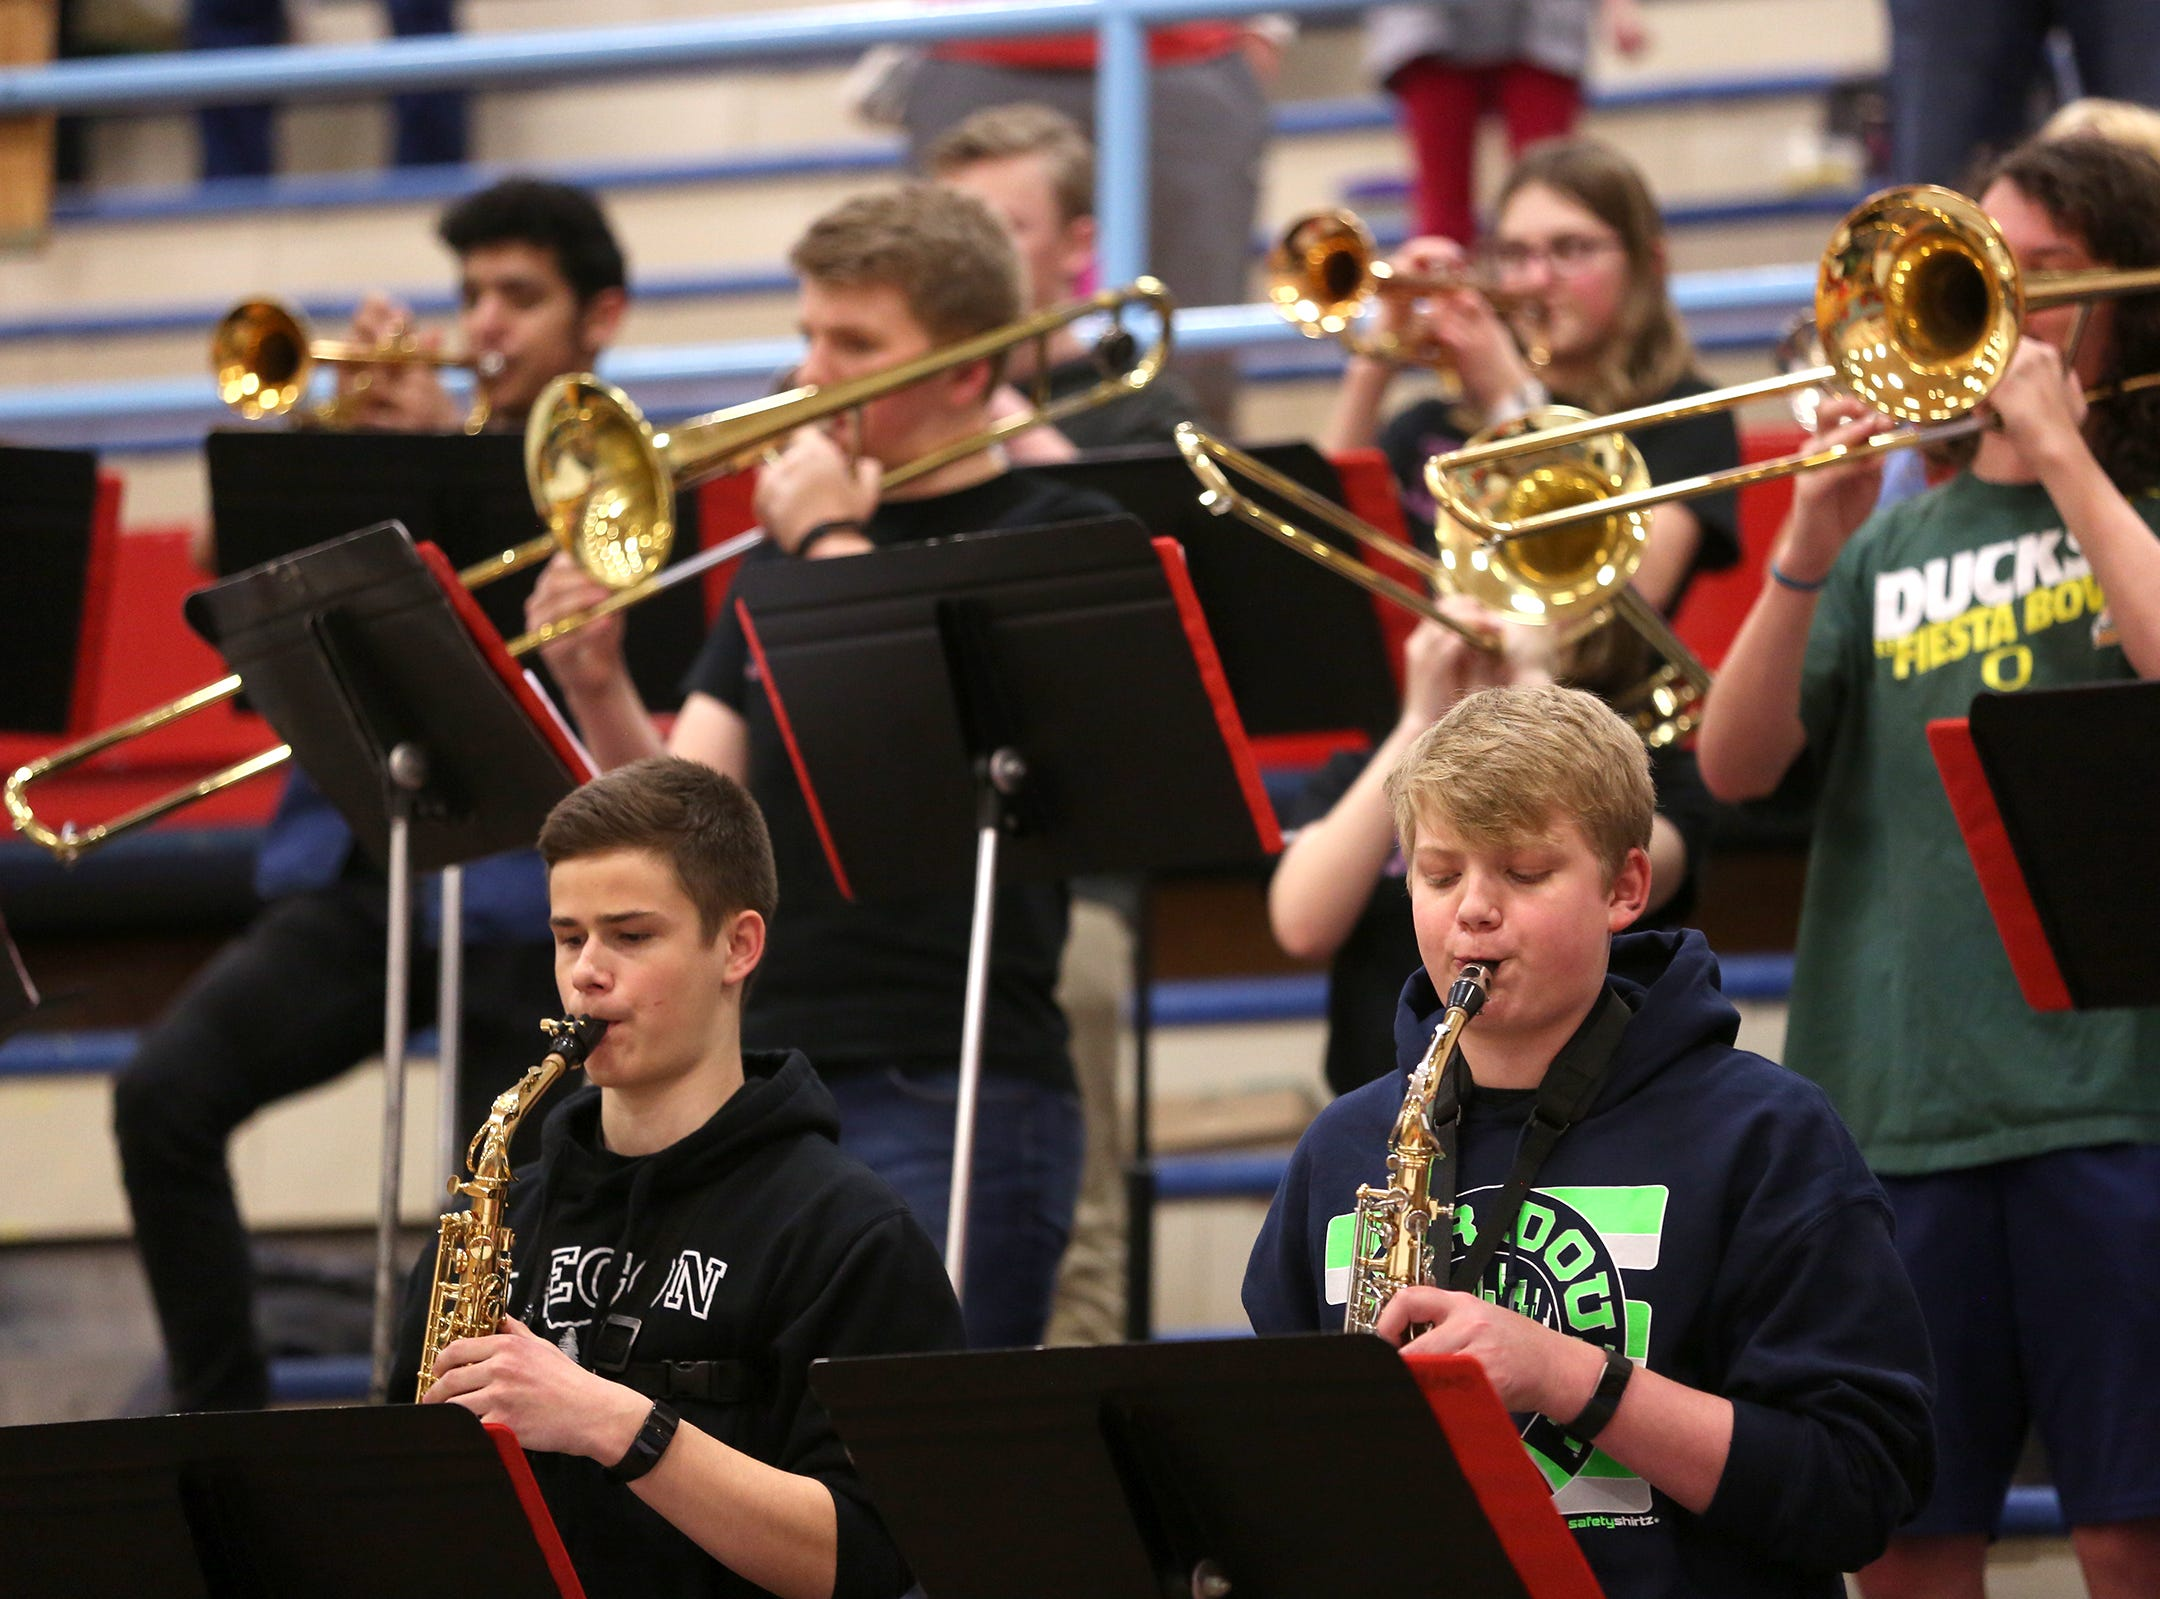 South Salem band students perform during the South Salem vs. West Linn boys basketball OSAA playoff game at South Salem High School on Friday, March 1, 2019.